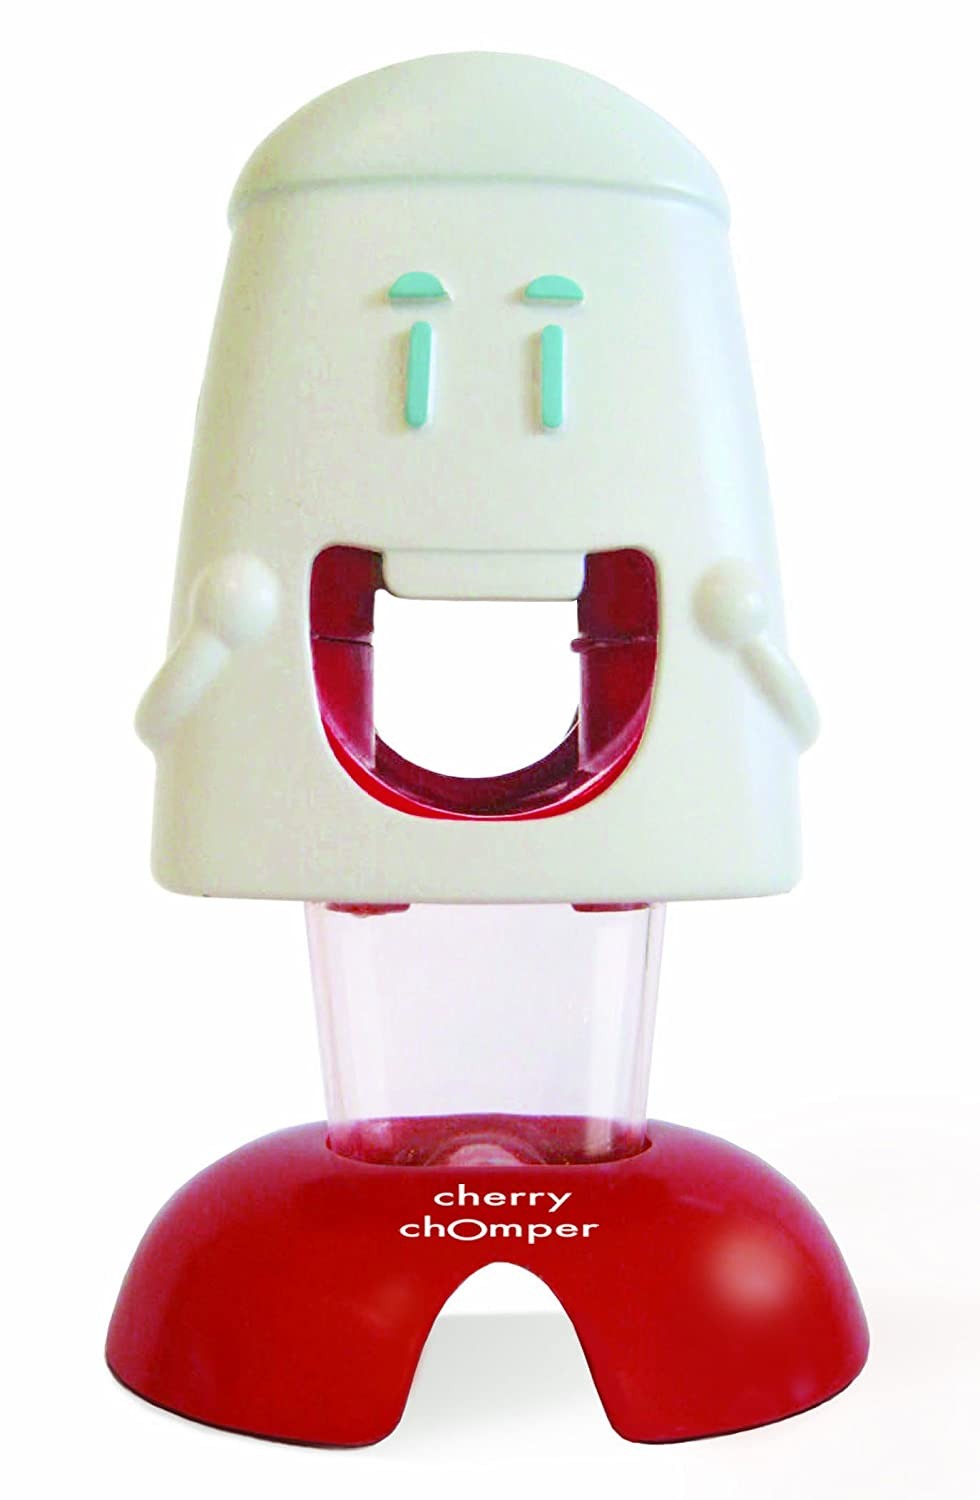 Cherry Chomper: for your cherry pit needs!